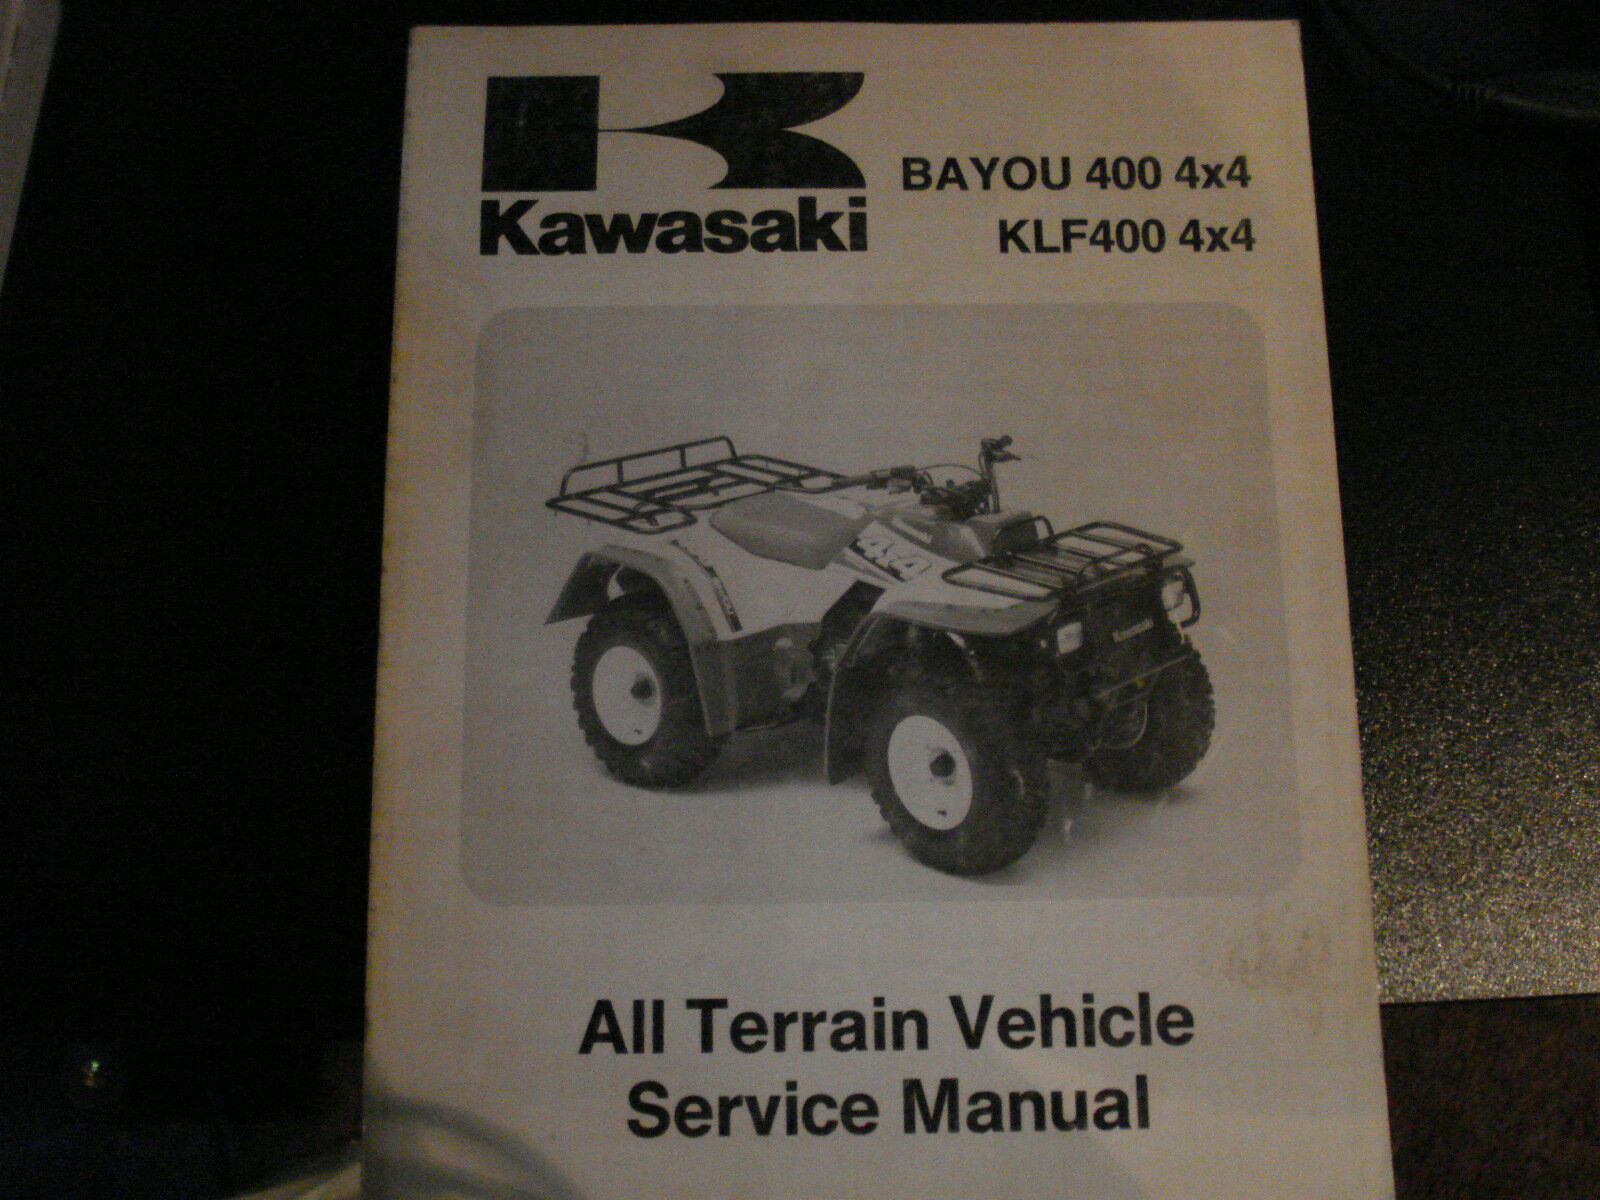 Kawasaki 93-95 BAYOU 400 4X4 KLF400 4X4 All Terrain Vehicle Service Manual  1 of 1Only 1 available See More